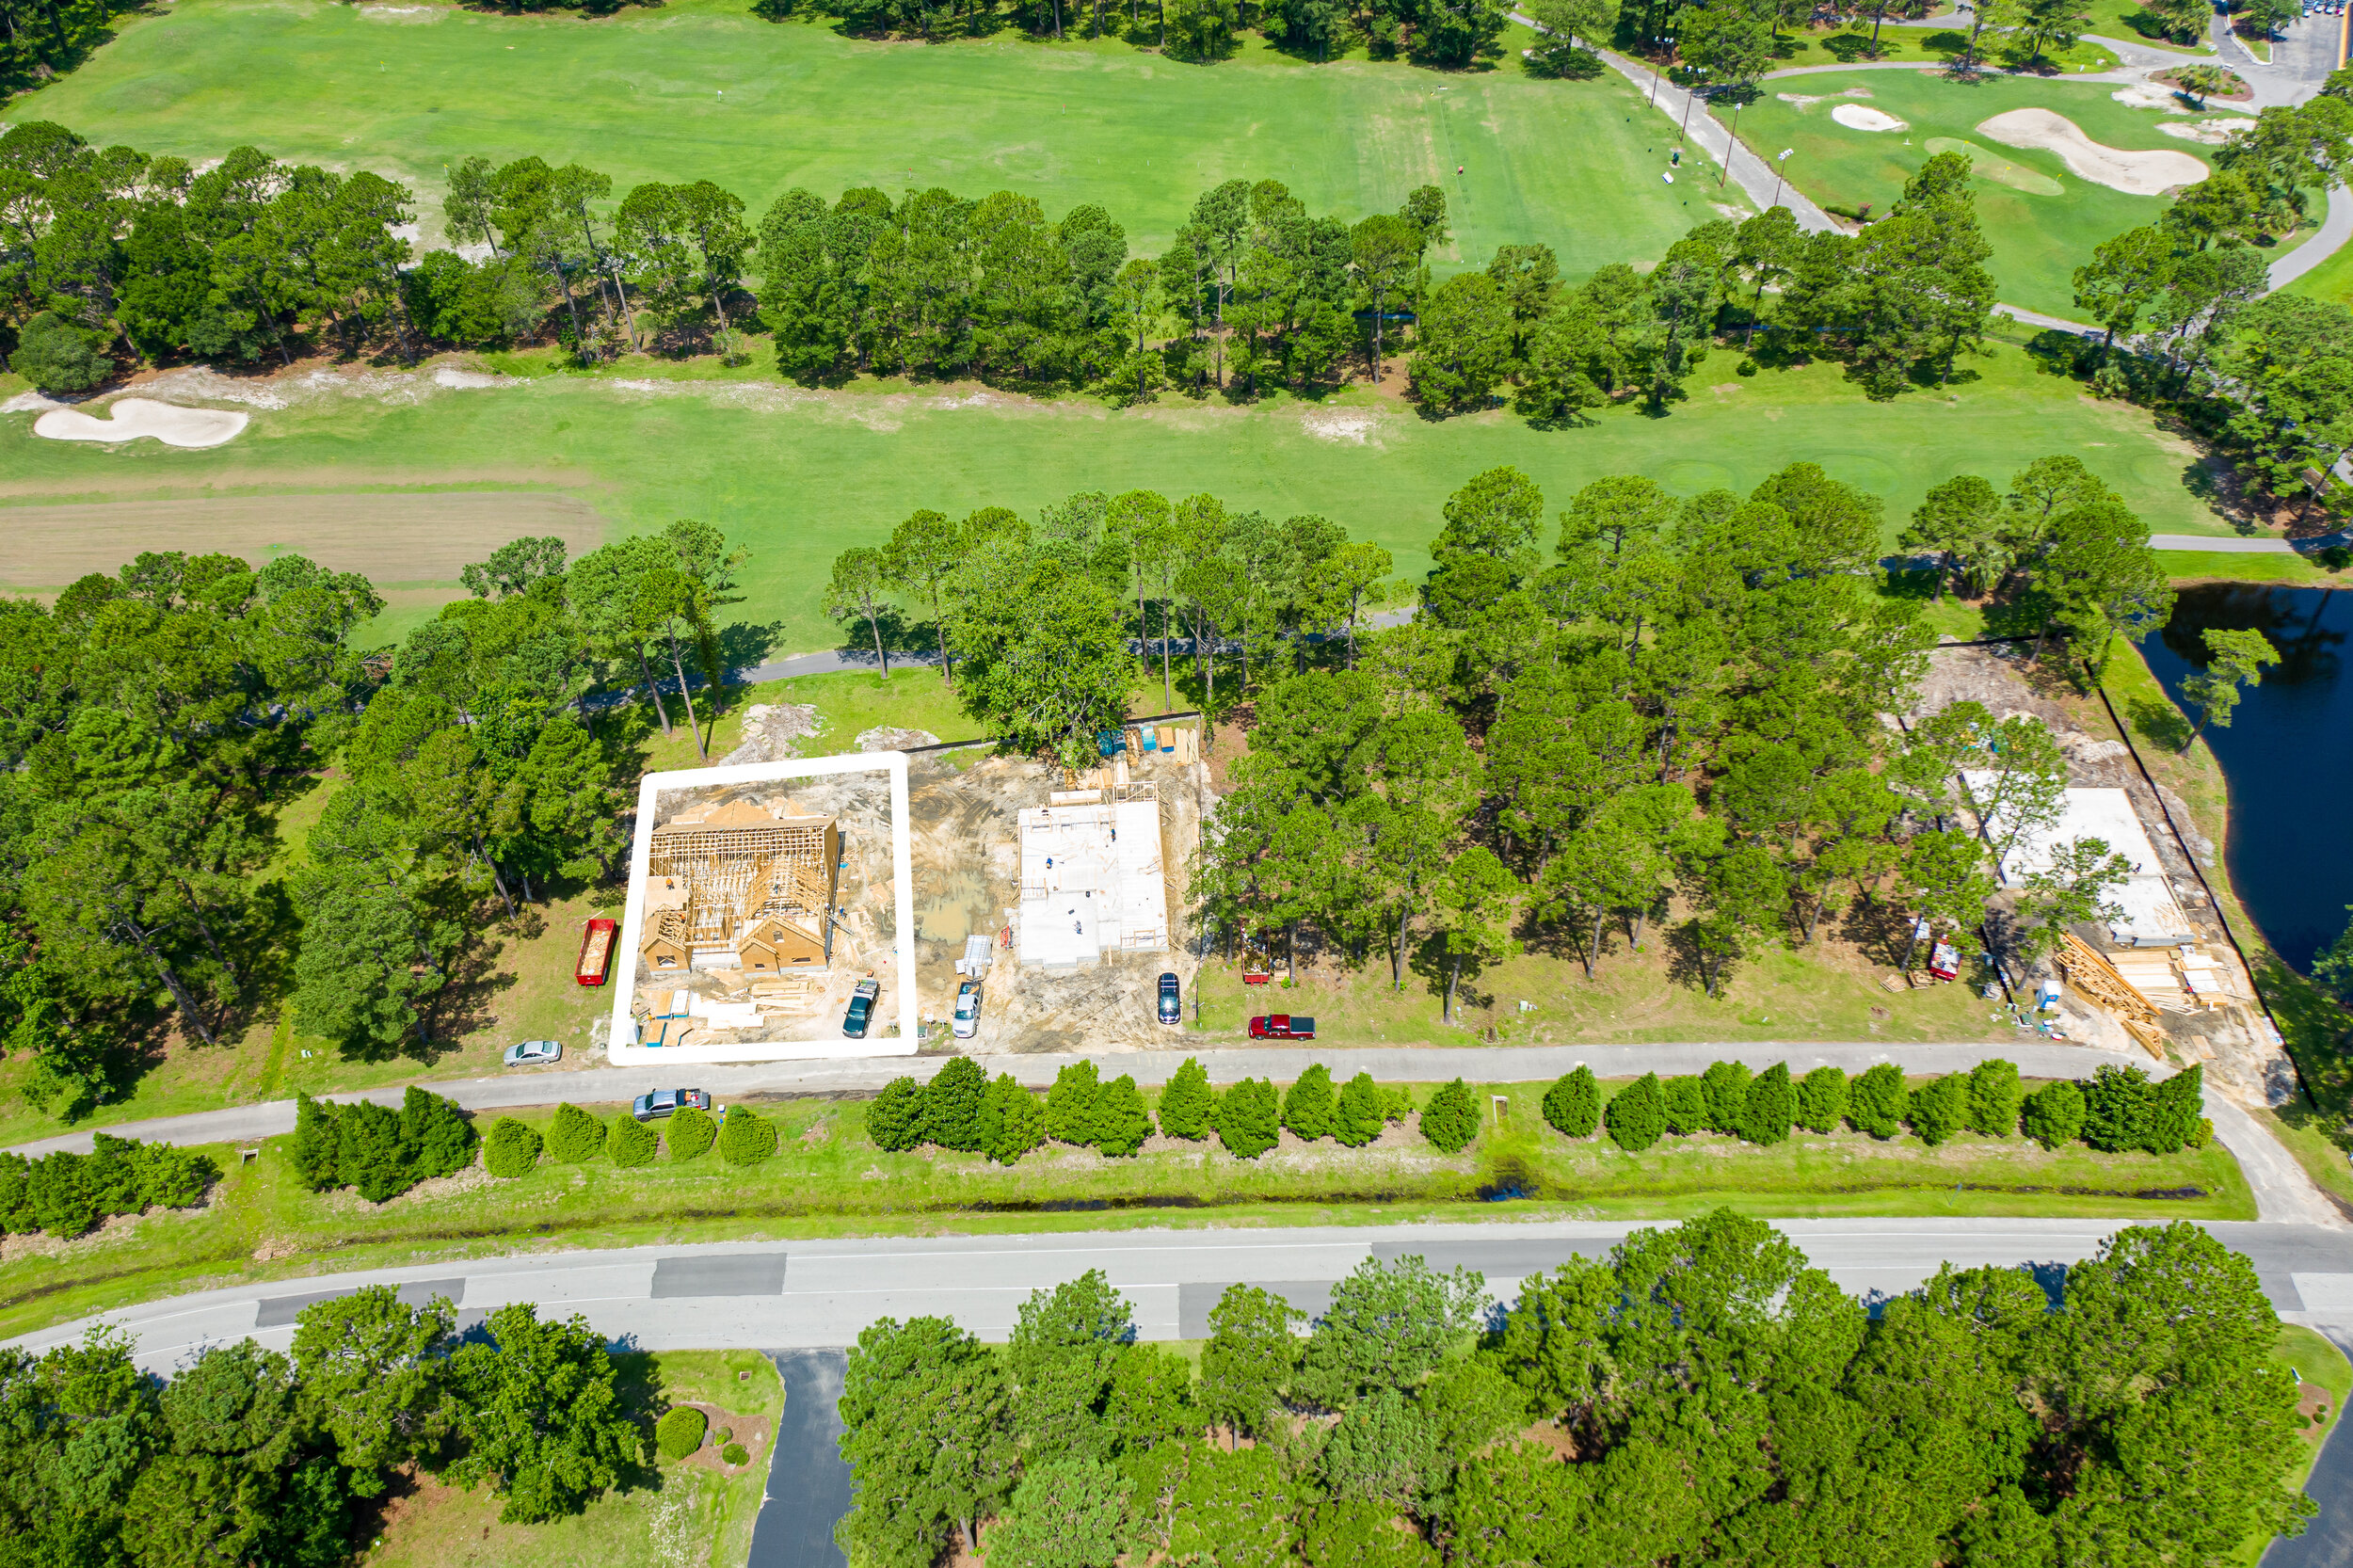 Aerial Photo of Lot 6 During Construction